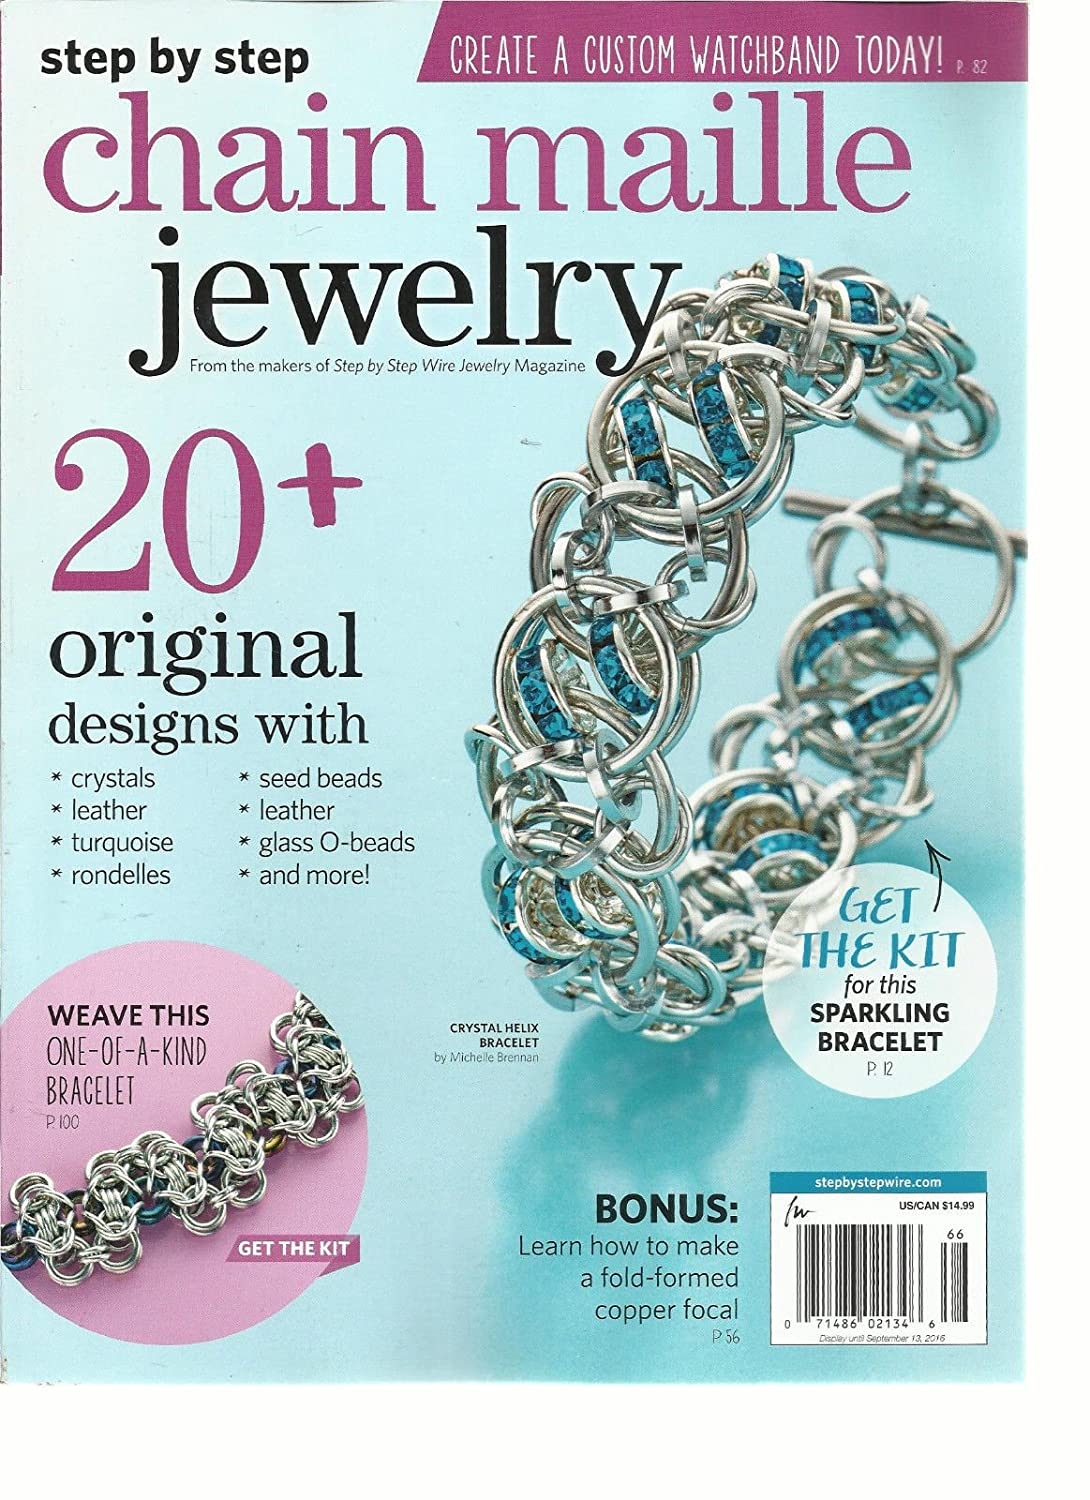 STEP BY STEP CHAIN MAILLE JEWELRY MAGAZINE, 20 + ORIGINAL DESIGNS ISSUE, 2016 s3457